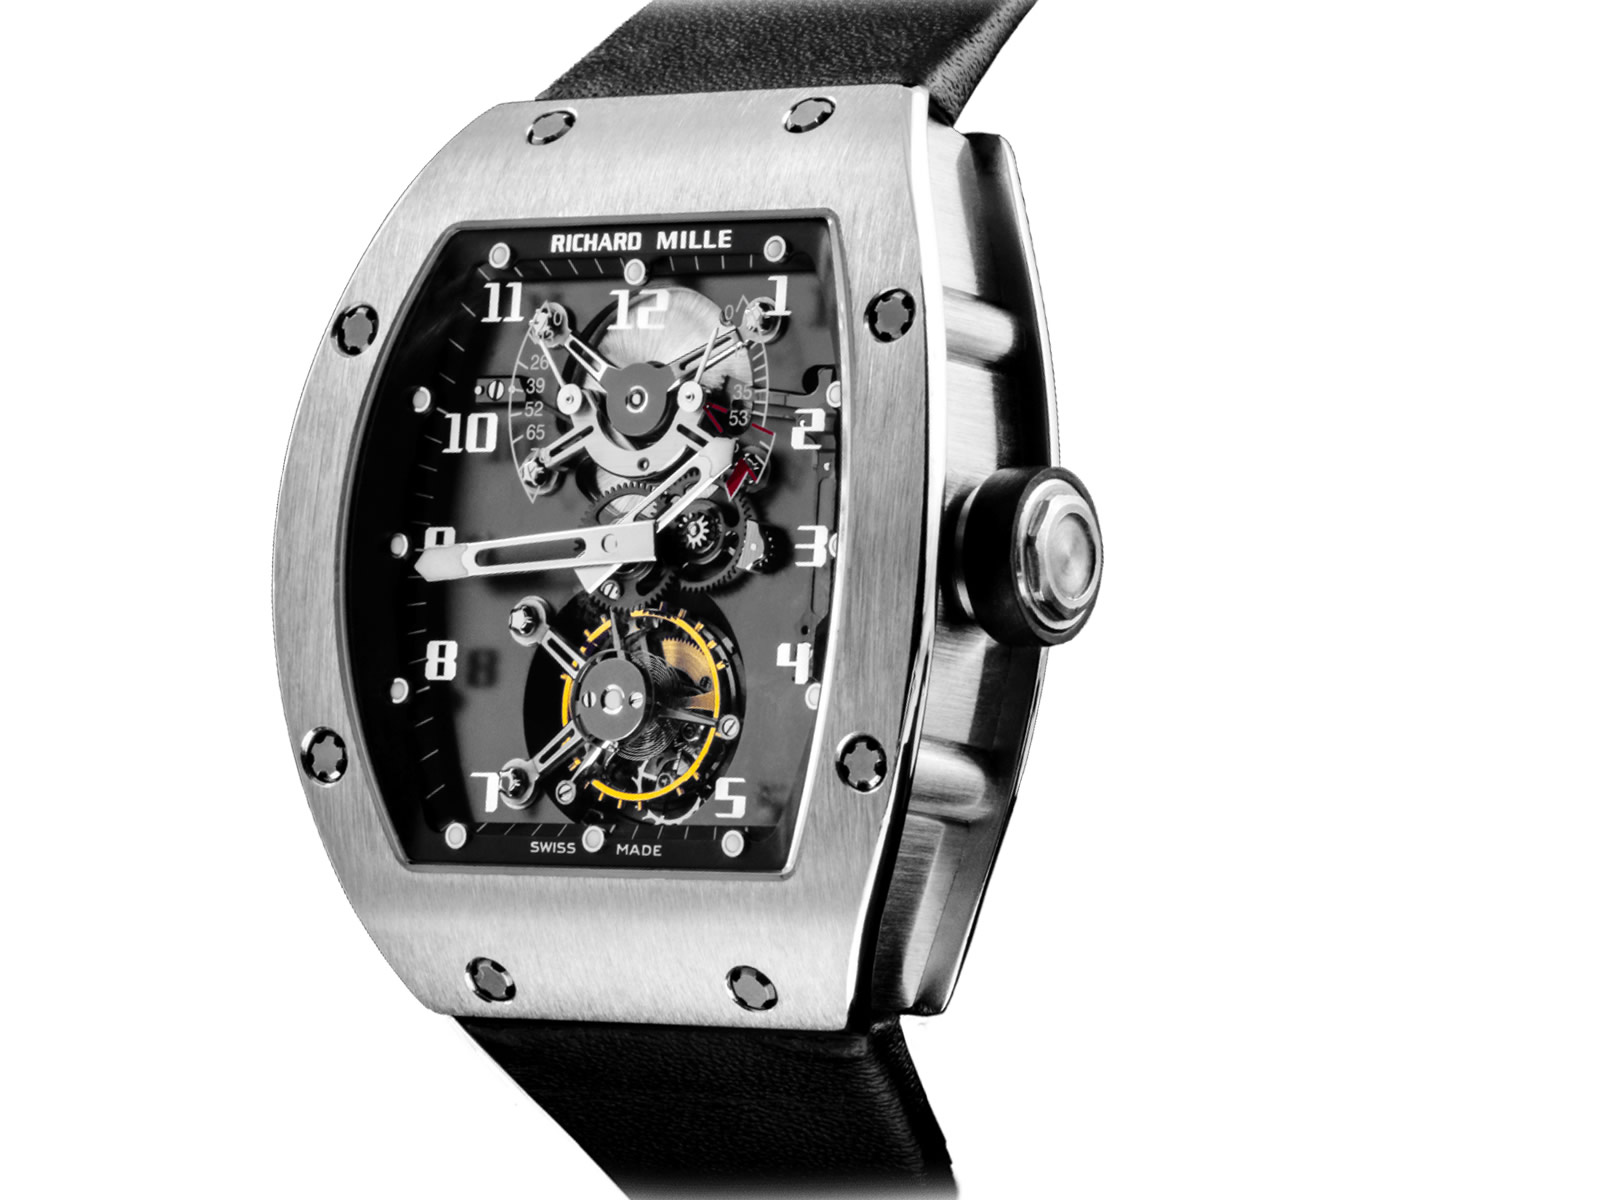 richard-mille-rm-001-tourbillon-1-.jpg